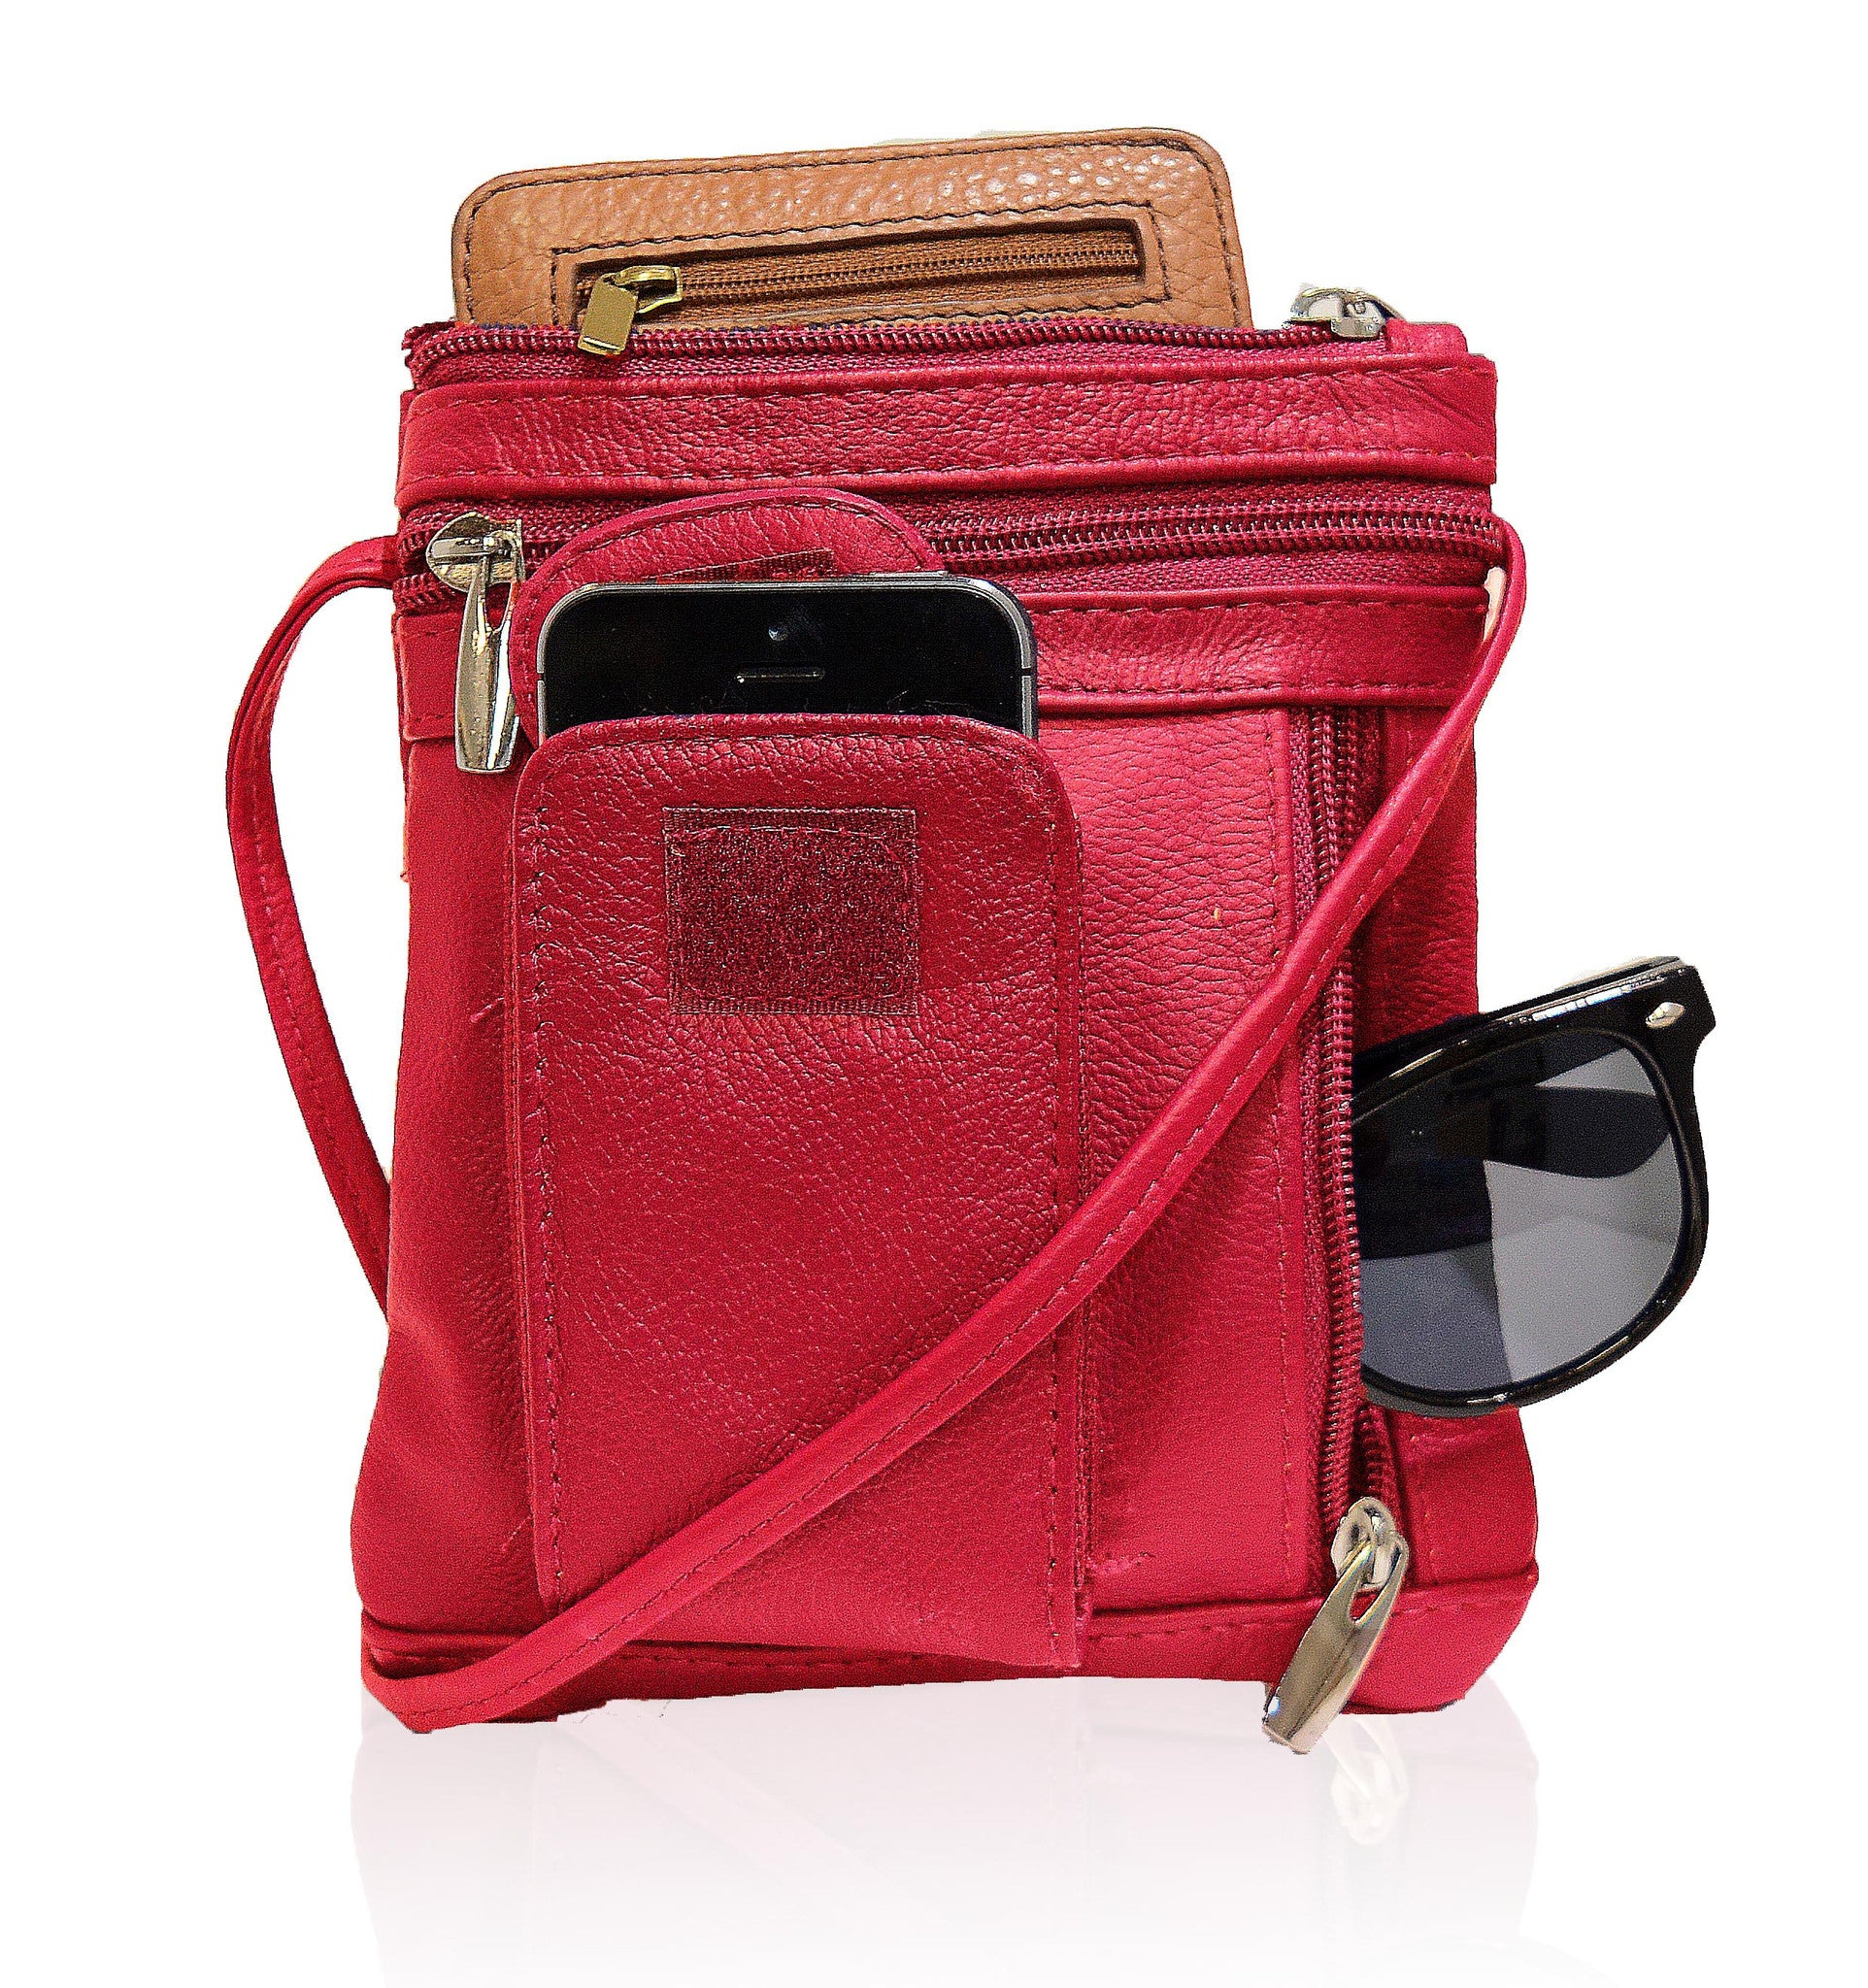 Red CrossBody Leather Bag Mini